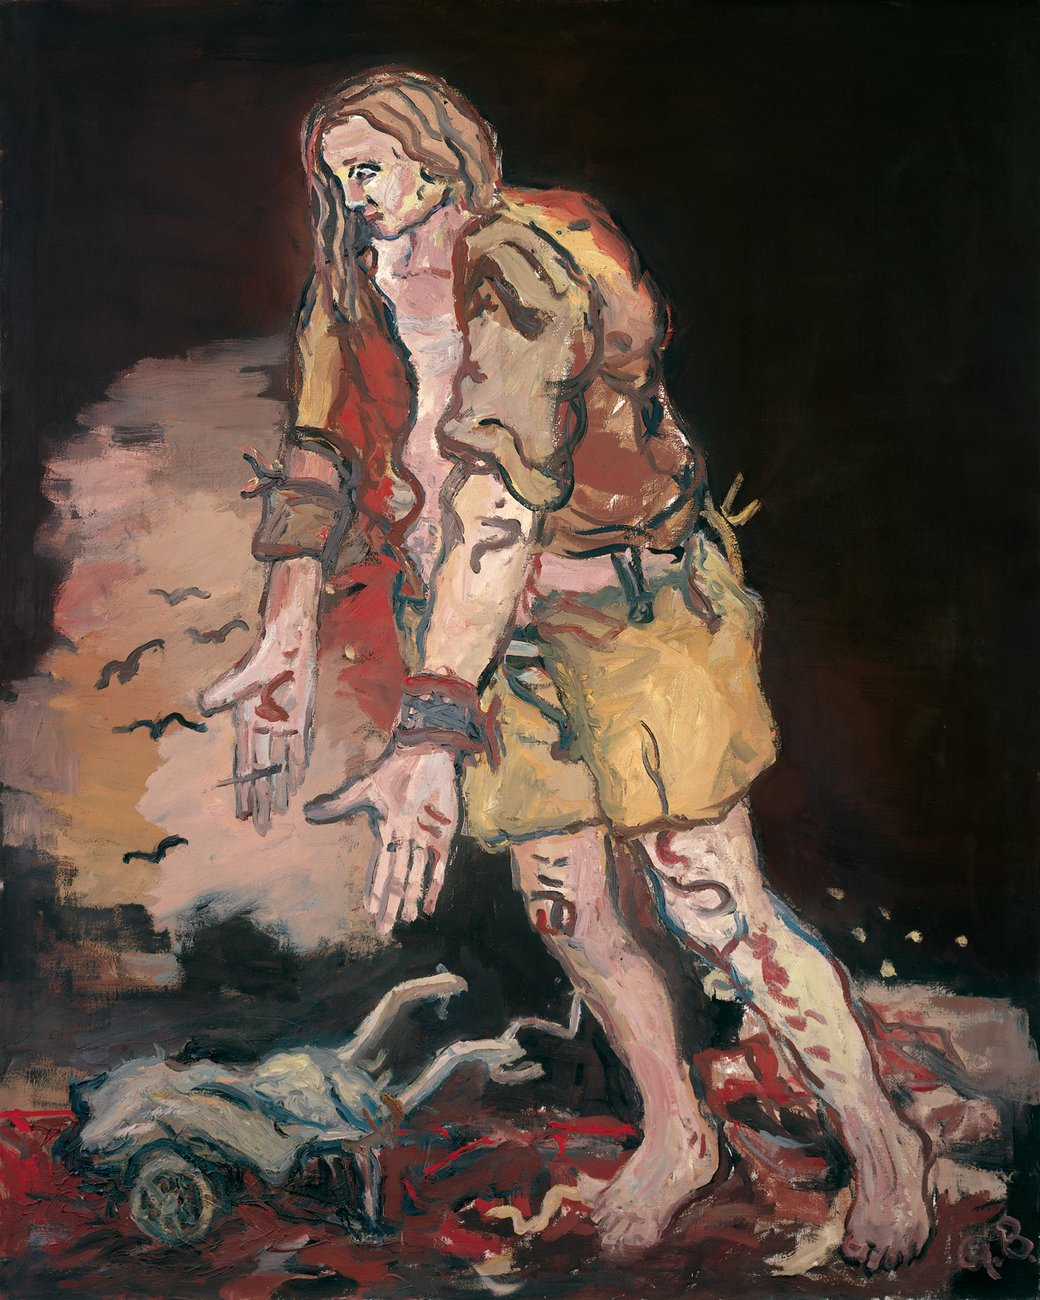 Artwork image, Georg Baselitz, Ludwig Richter auf dem Weg zur Arbeit (Ludwig Richter on His Way to Work)